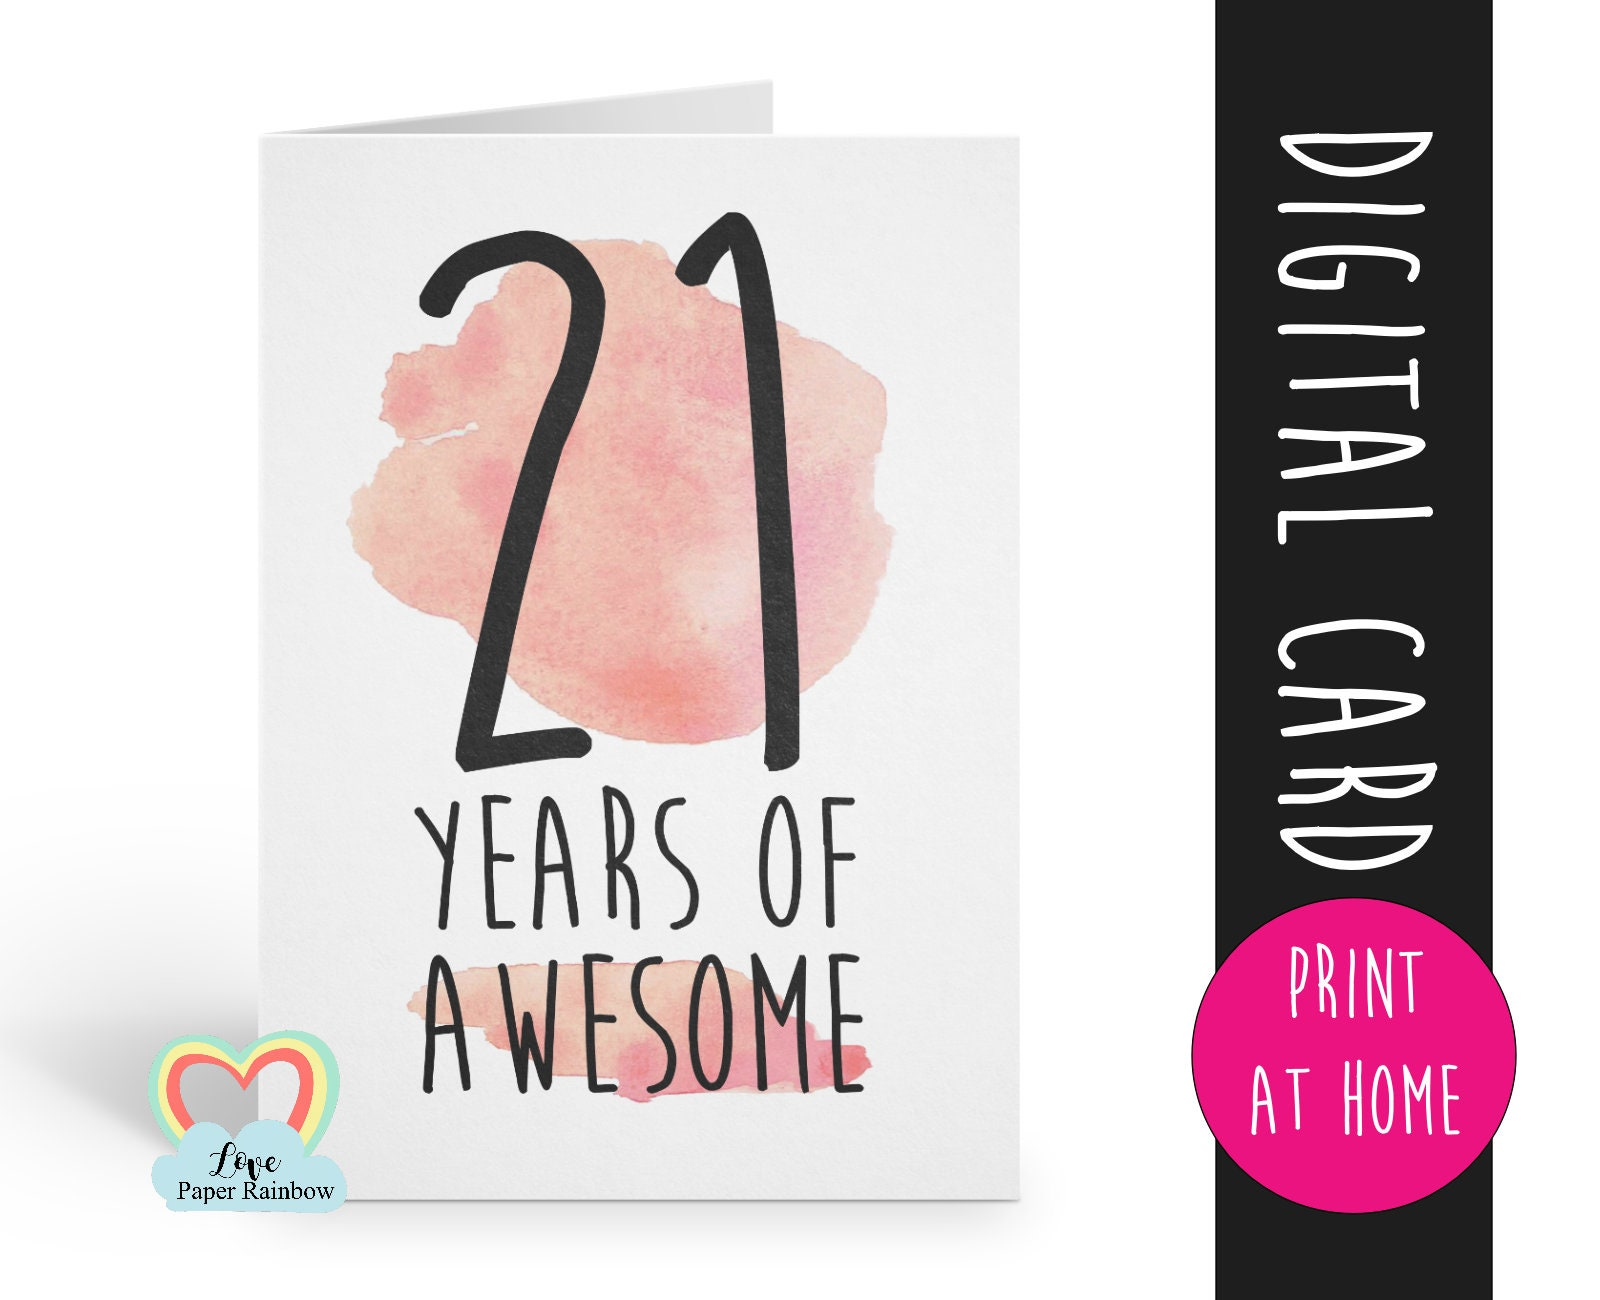 image about 21st Birthday Cards Printable named PRINTABLE 21st birthday card, birthday card printable, instantaneous